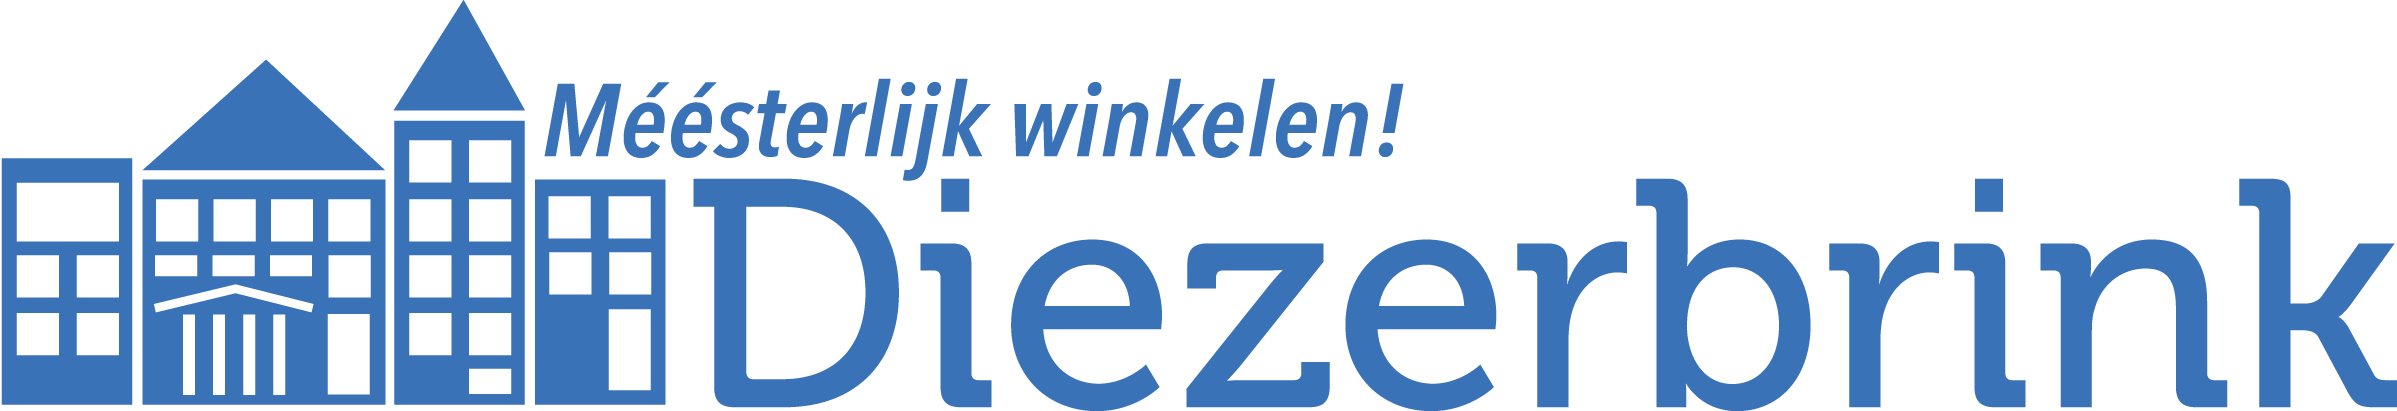 Winkeliersvereniging Diezerbrink